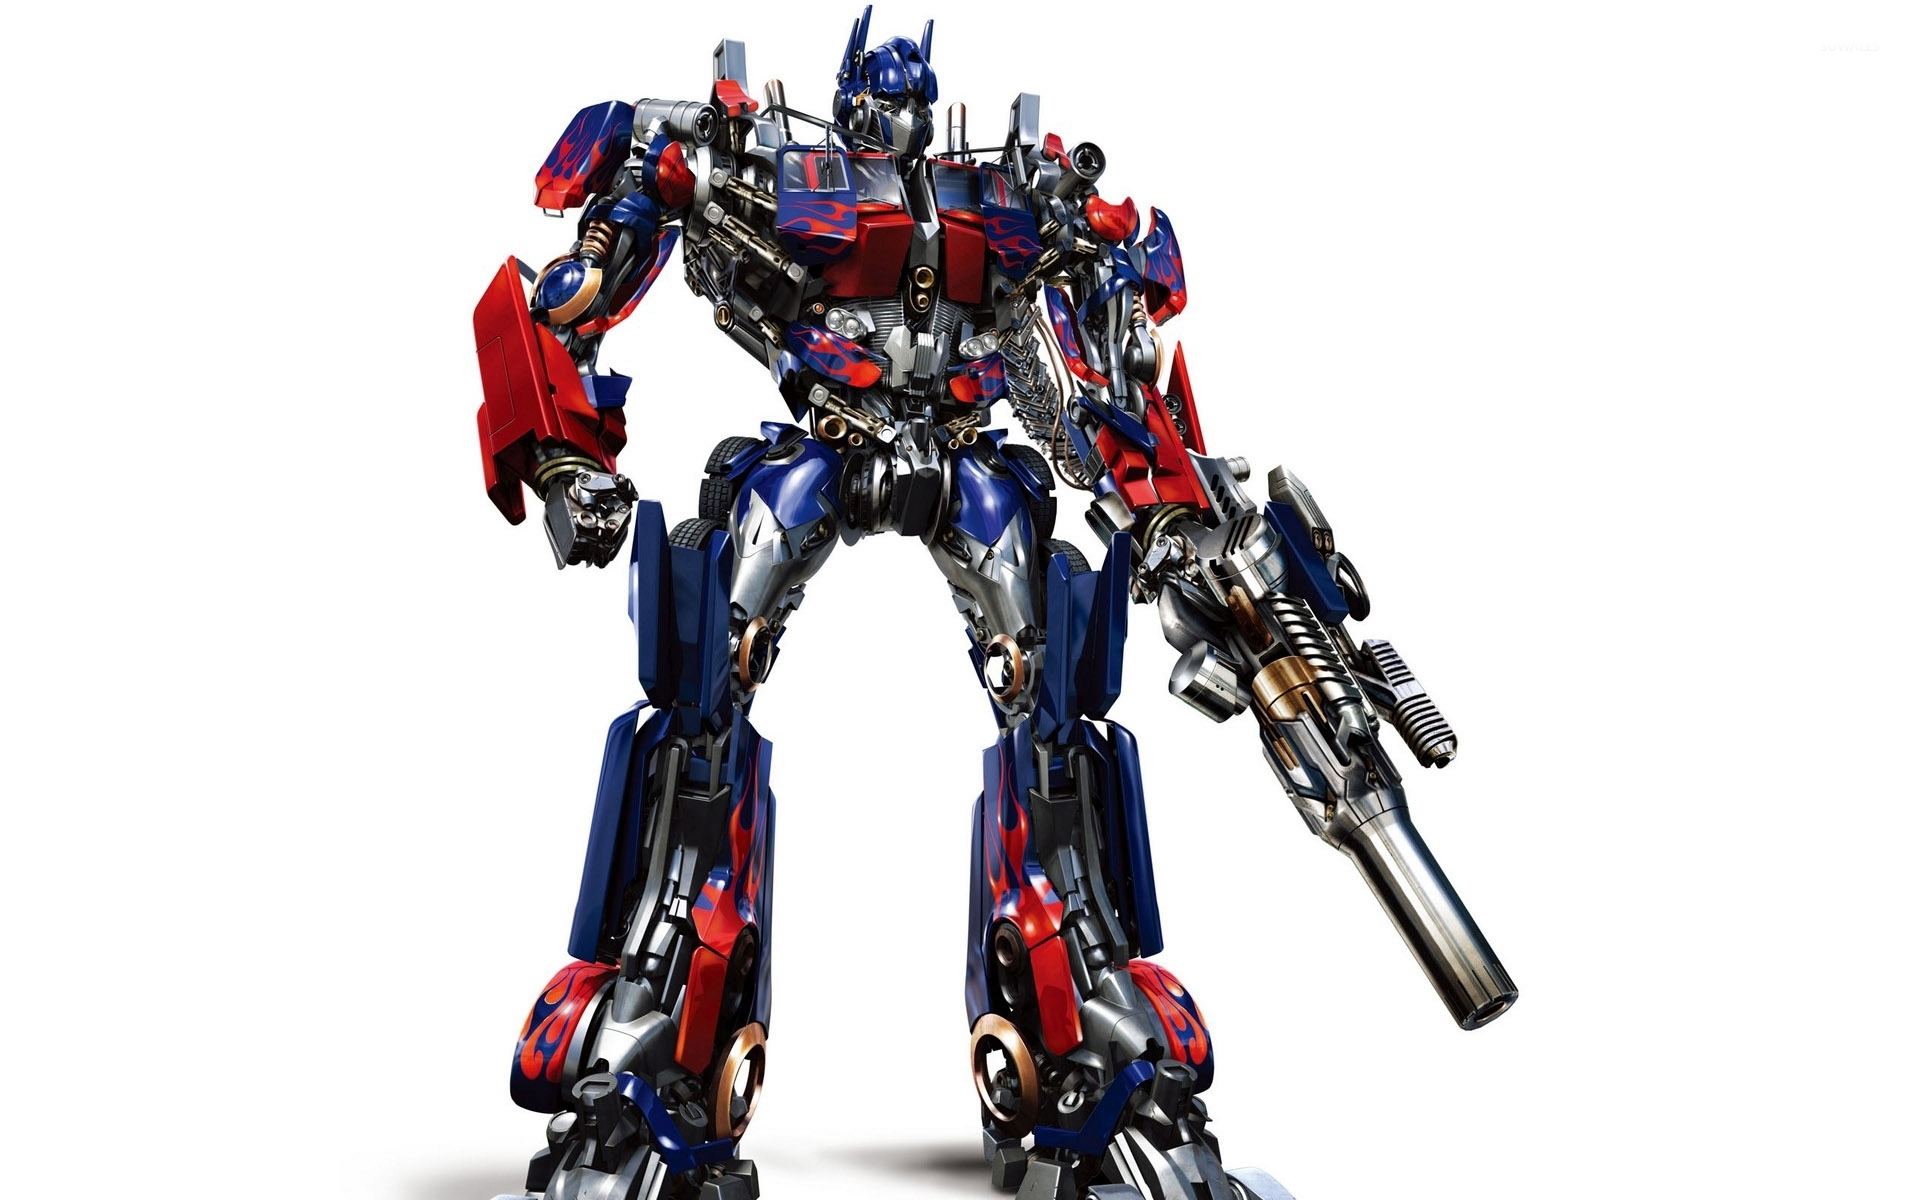 Transformers Optimus Prime Wallpaper - WallpaperSafari